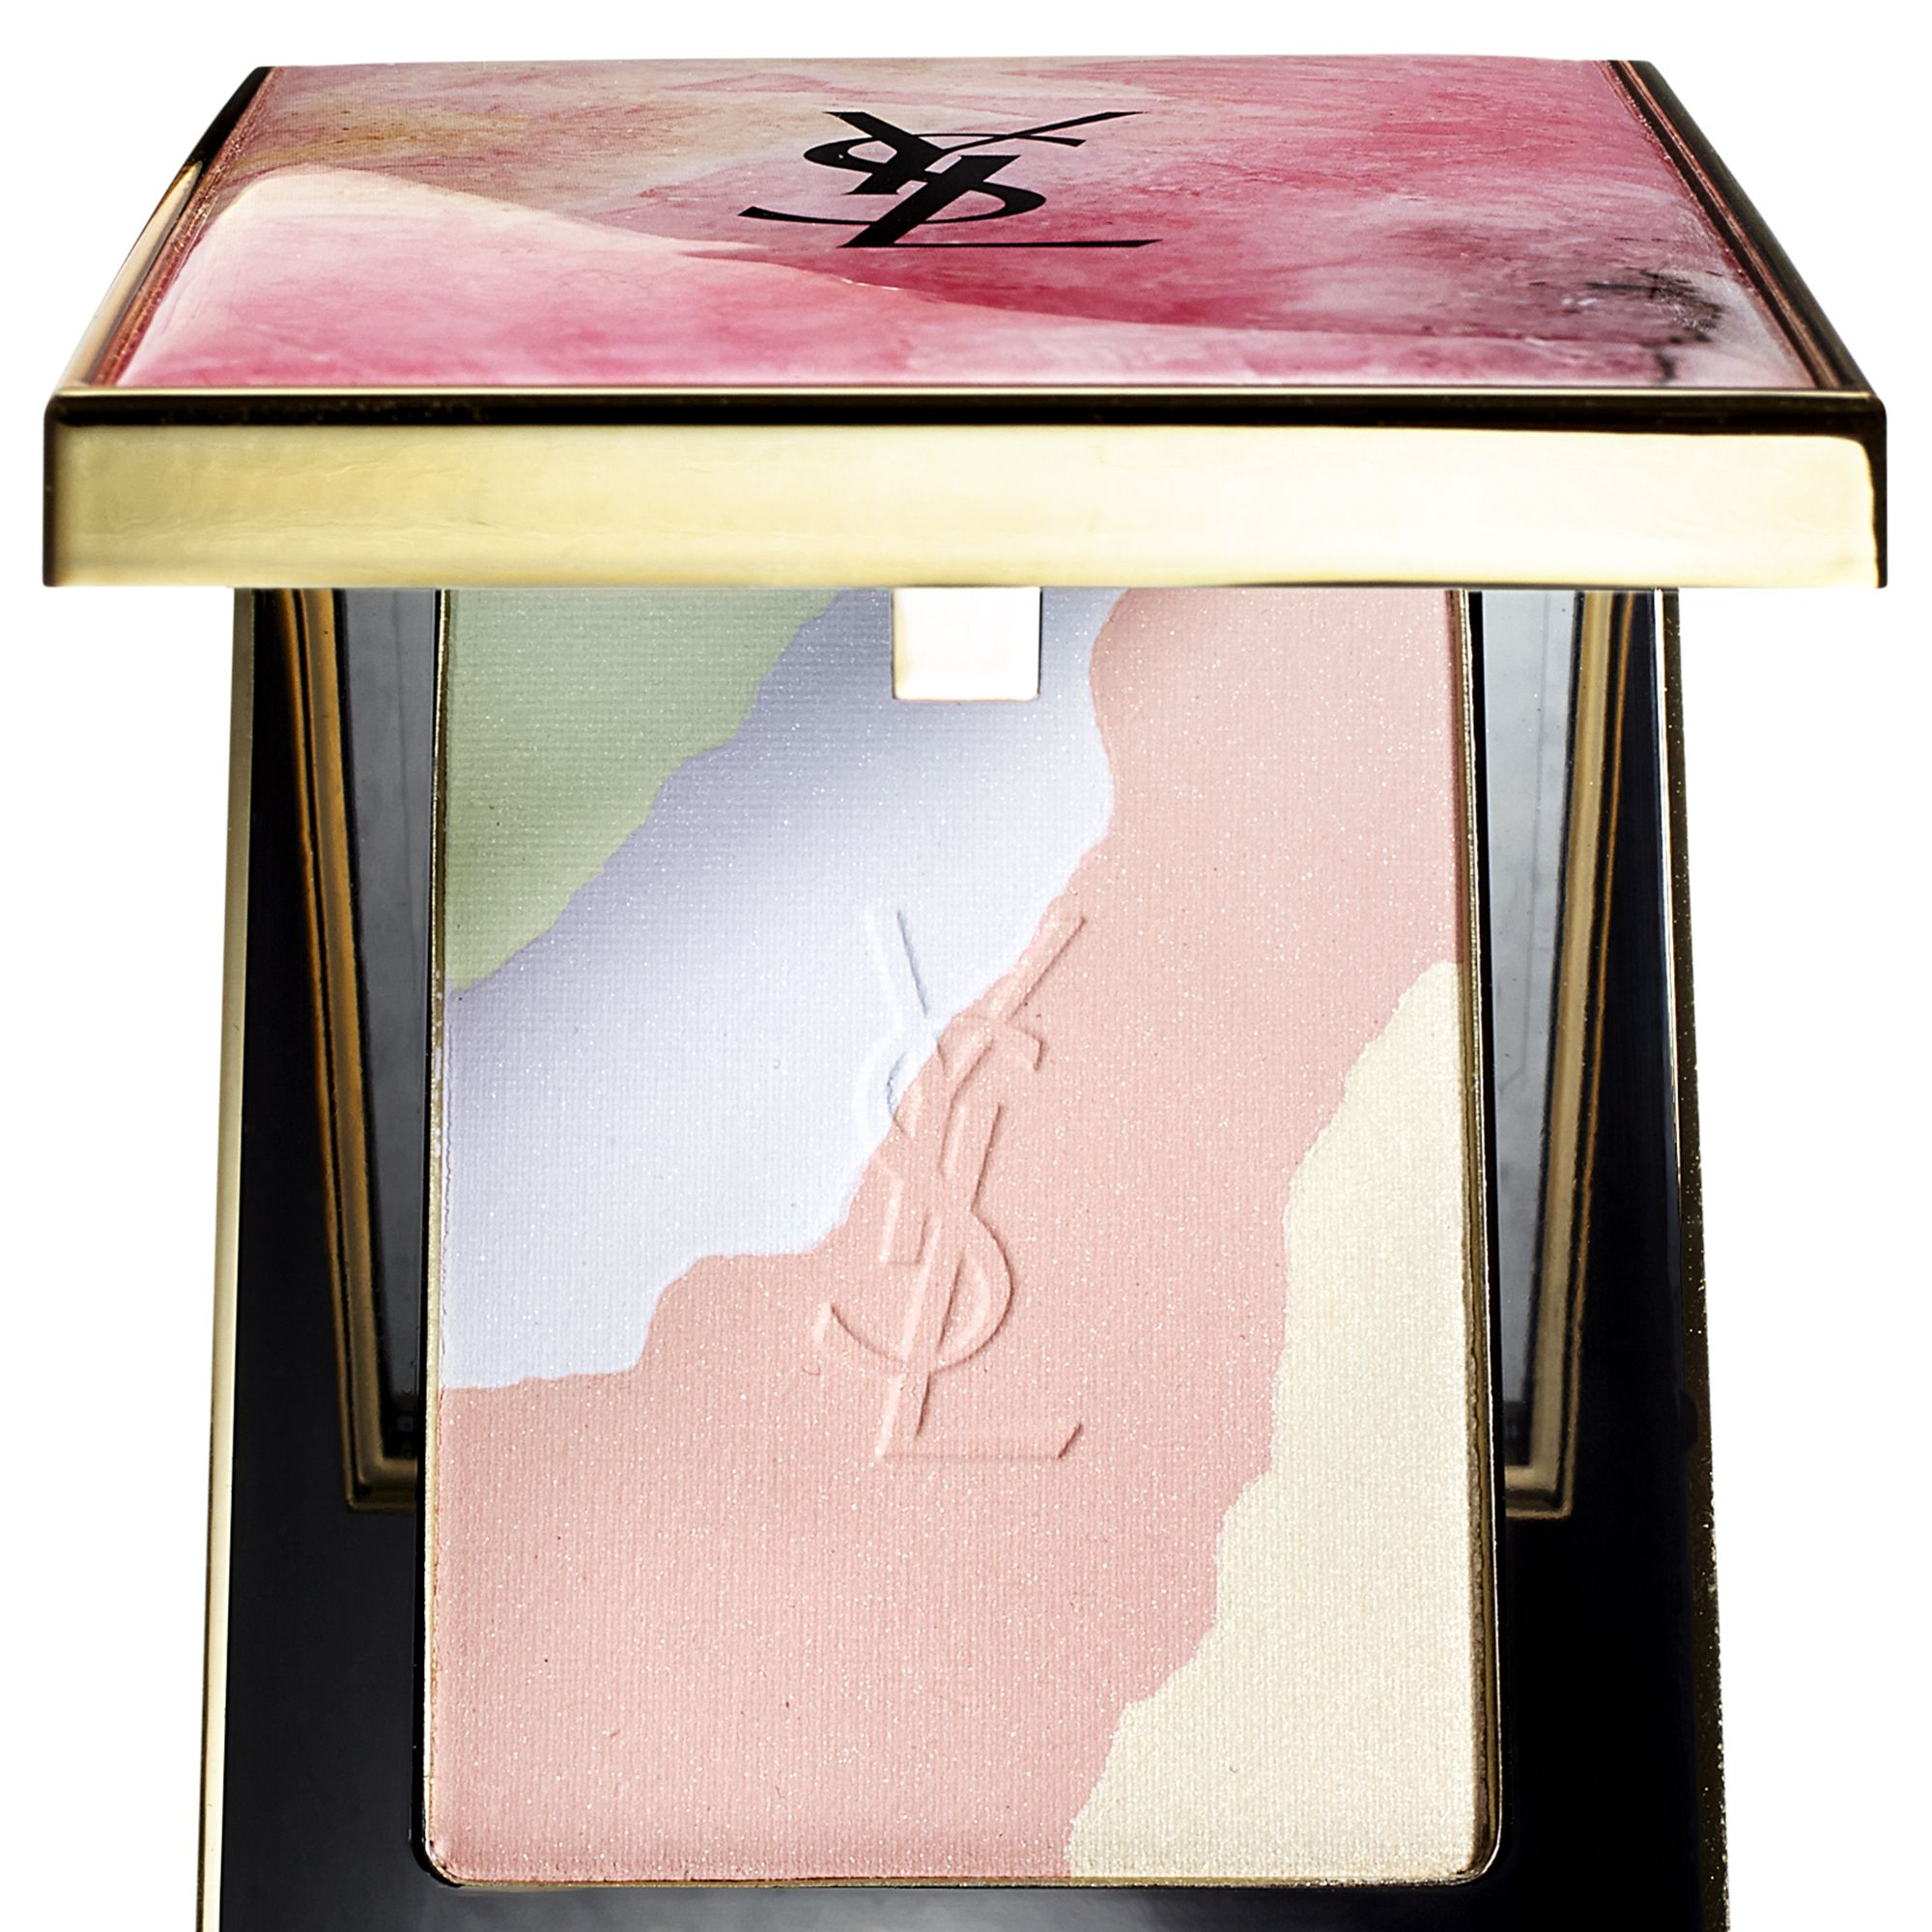 "<p><strong>Yves Saint Laurent</strong> Couture Collector's Palette in Gypsy Opale, $47, <a href=""http://www1.bloomingdales.com/shop/product/yves-saint-laurent-couture-collectors-palette-boho-stones-collection?ID=1616040&pla_country=US&cm_mmc=Google-PLA-ADC-_-Beauty-NA-_-Yves%20Saint%20Laurent-_-3614270998379USA&catargetid=120156070000240902&cadevice=c"" target=""_blank"">bloomingdales.com</a>.</p><p><span></span></p>"